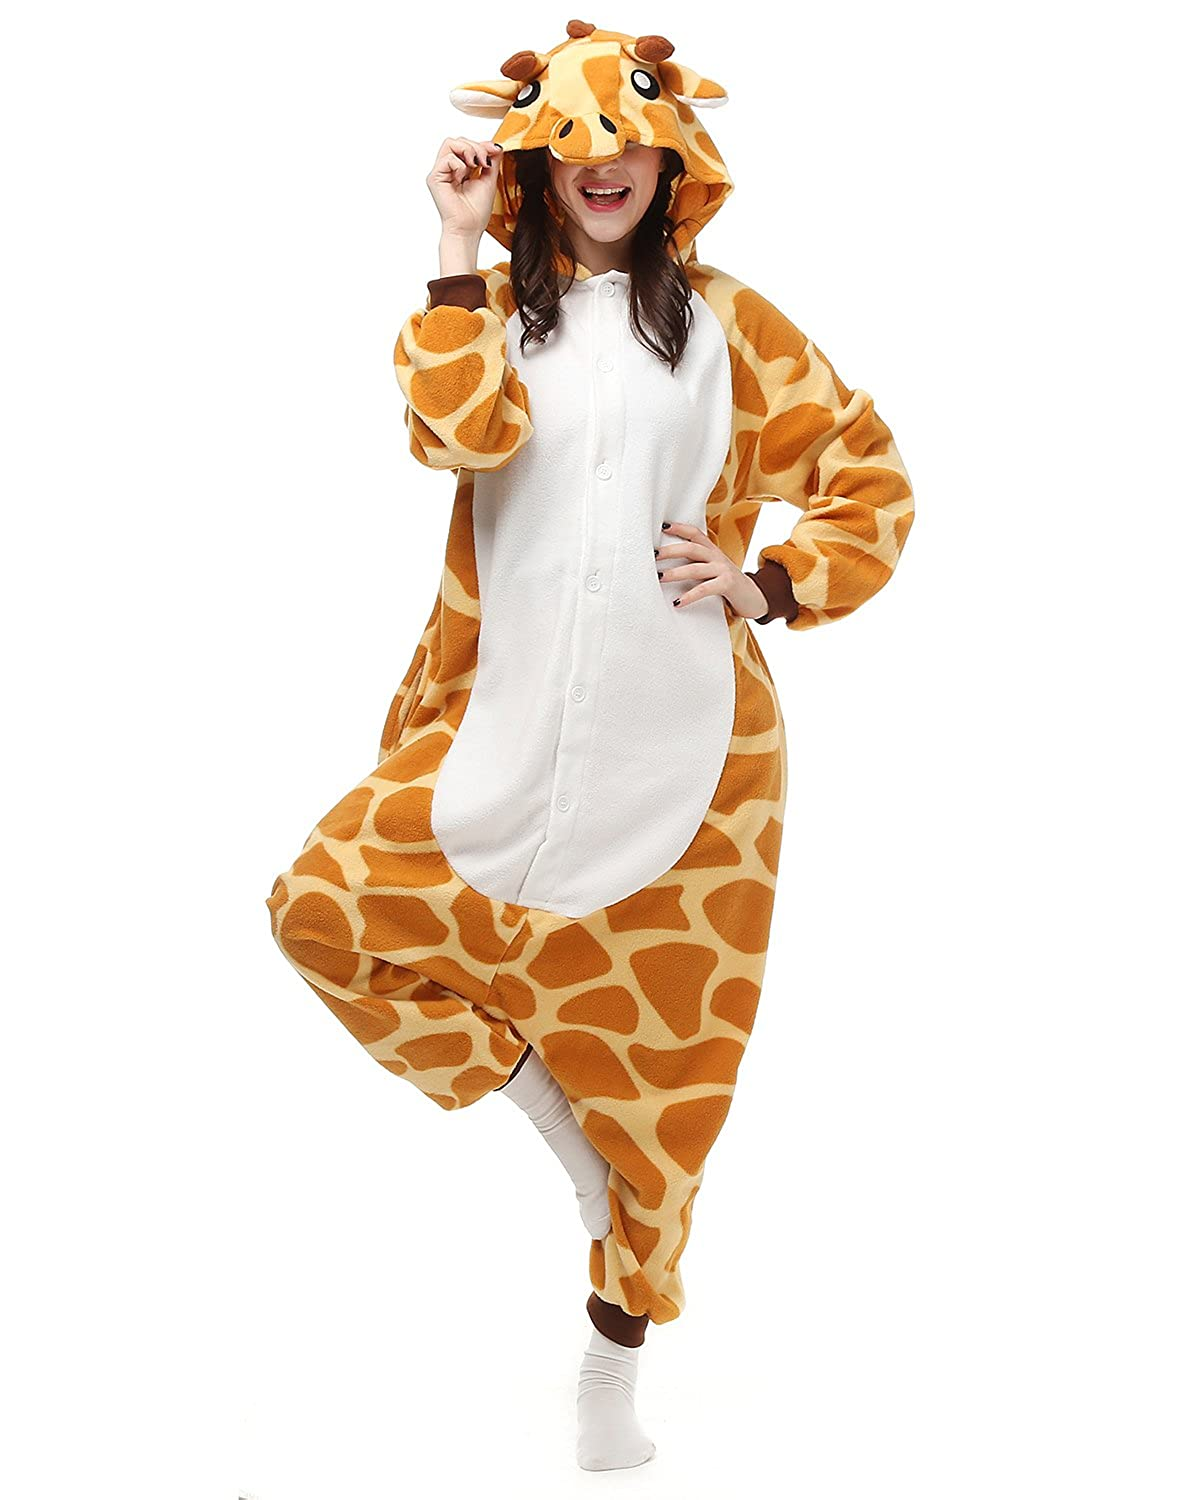 amazoncom adults onesies animal women mens giraffe onesie costumes cosplay outfit pamajas clothing